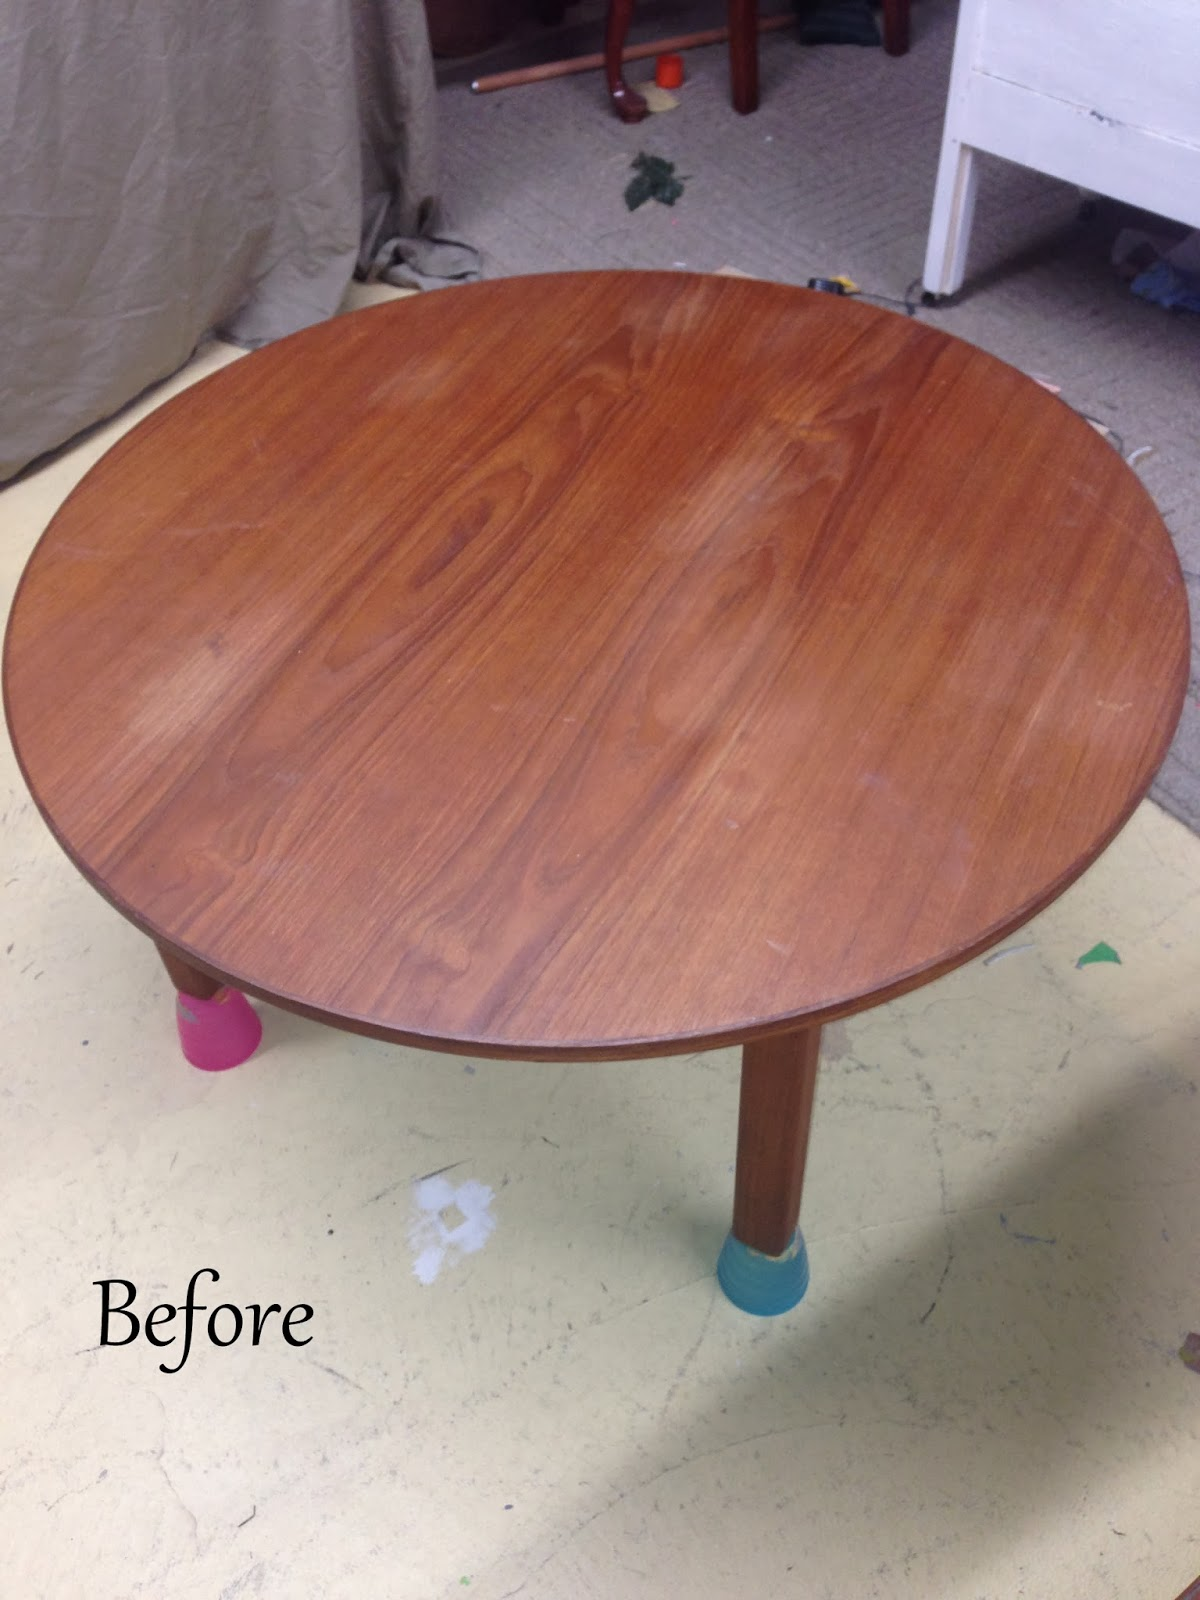 White Washing A Table - Before